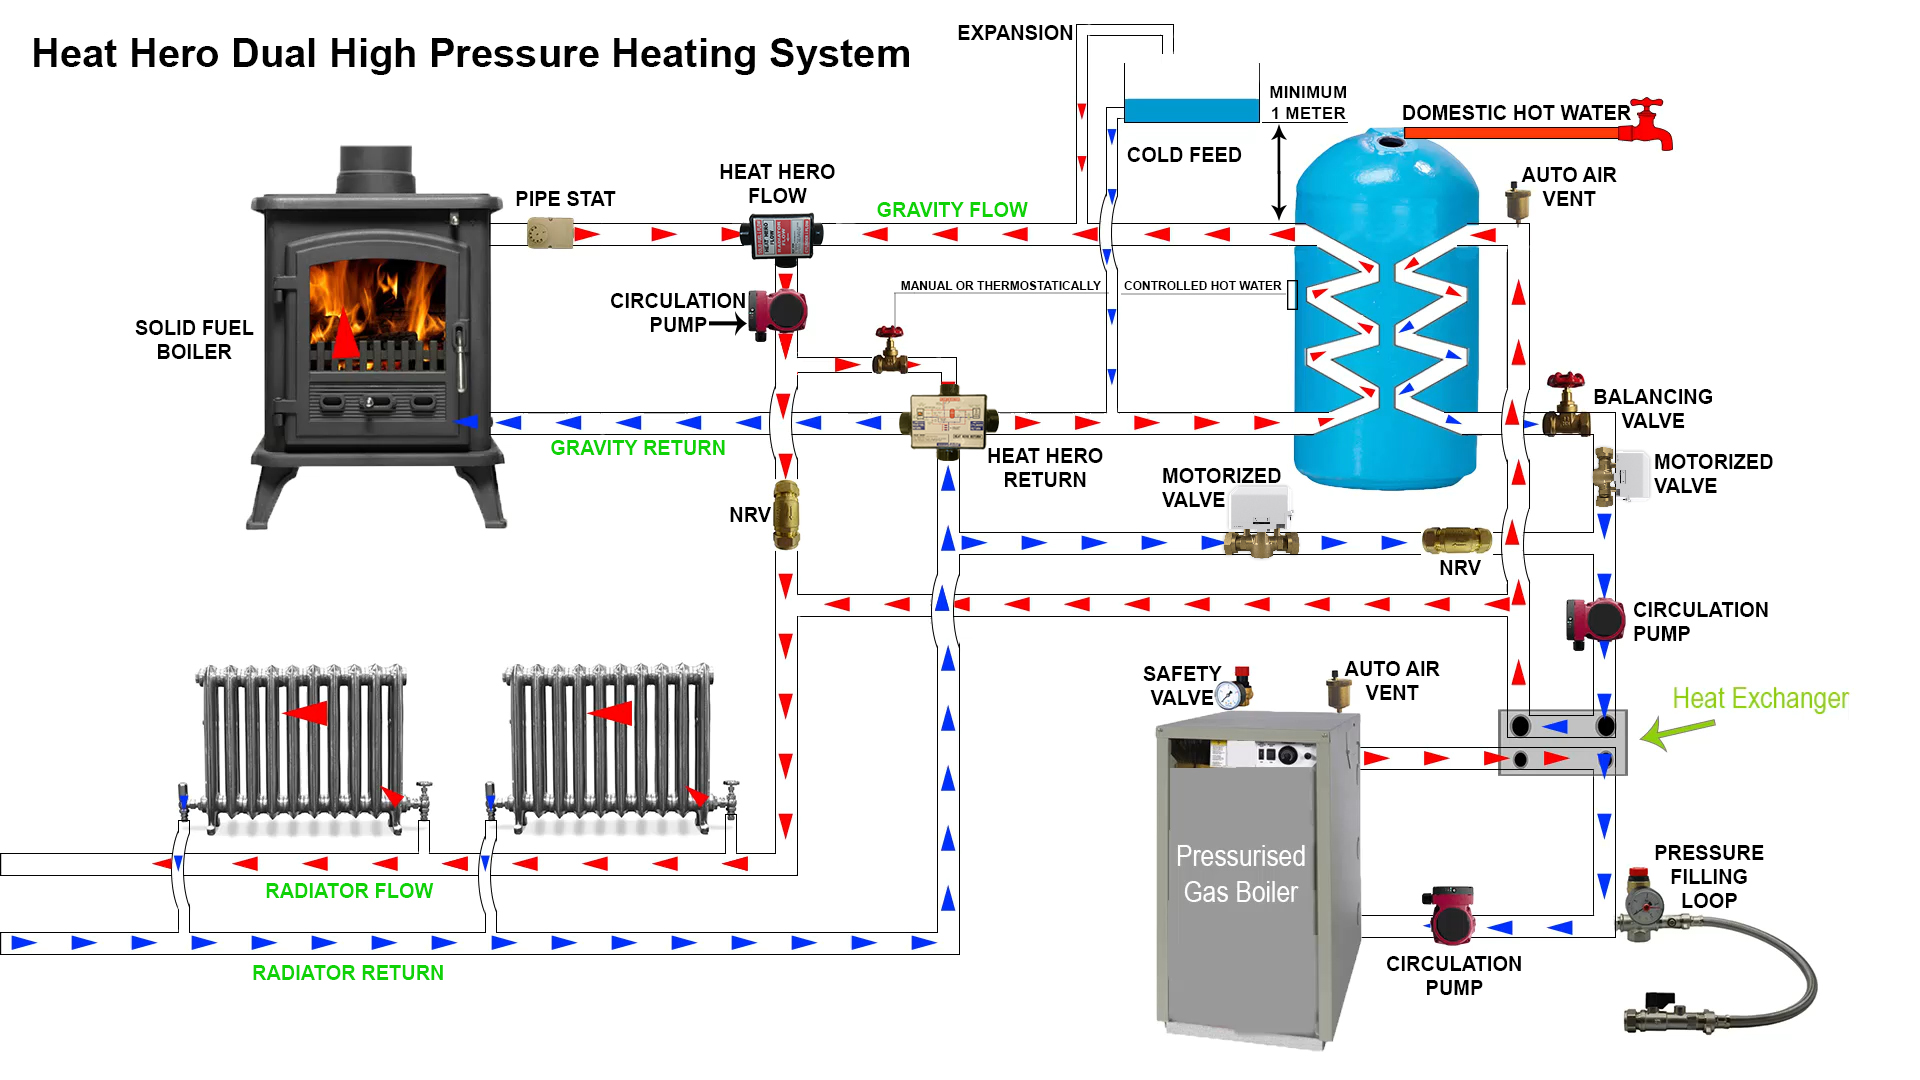 hight resolution of installing heat hero gravity to link an open vented system into a pressurised heating system